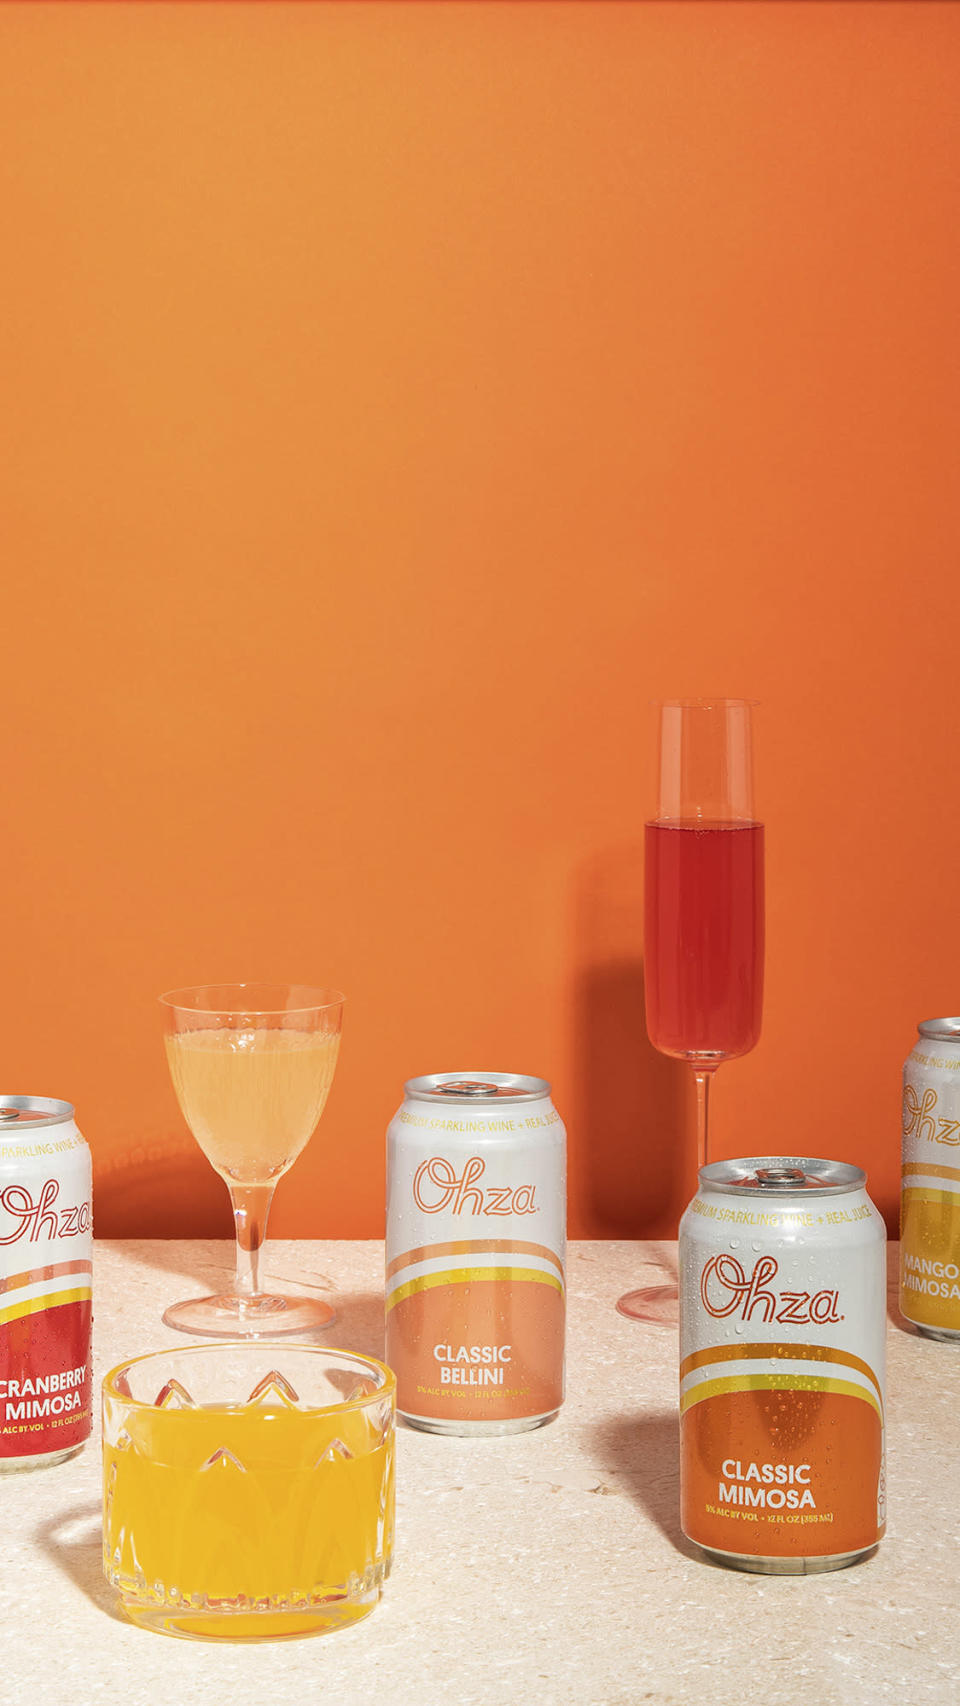 """<p>Toast all the inspiring ladies in your life with these yummy single-serve drinks. The <a href=""""https://ohzamimosas.com/"""" rel=""""nofollow noopener"""" target=""""_blank"""" data-ylk=""""slk:champagne cocktail"""" class=""""link rapid-noclick-resp"""">champagne cocktail</a> comes in four scrumptious and refreshing flavors including Mimosa and Bellini — they're perfect for brunch!</p> <p><strong>$39 for 12 cans, <a href=""""https://ohzamimosas.com/"""" rel=""""nofollow noopener"""" target=""""_blank"""" data-ylk=""""slk:ohzamimosas.com"""" class=""""link rapid-noclick-resp"""">ohzamimosas.com</a></strong></p>"""